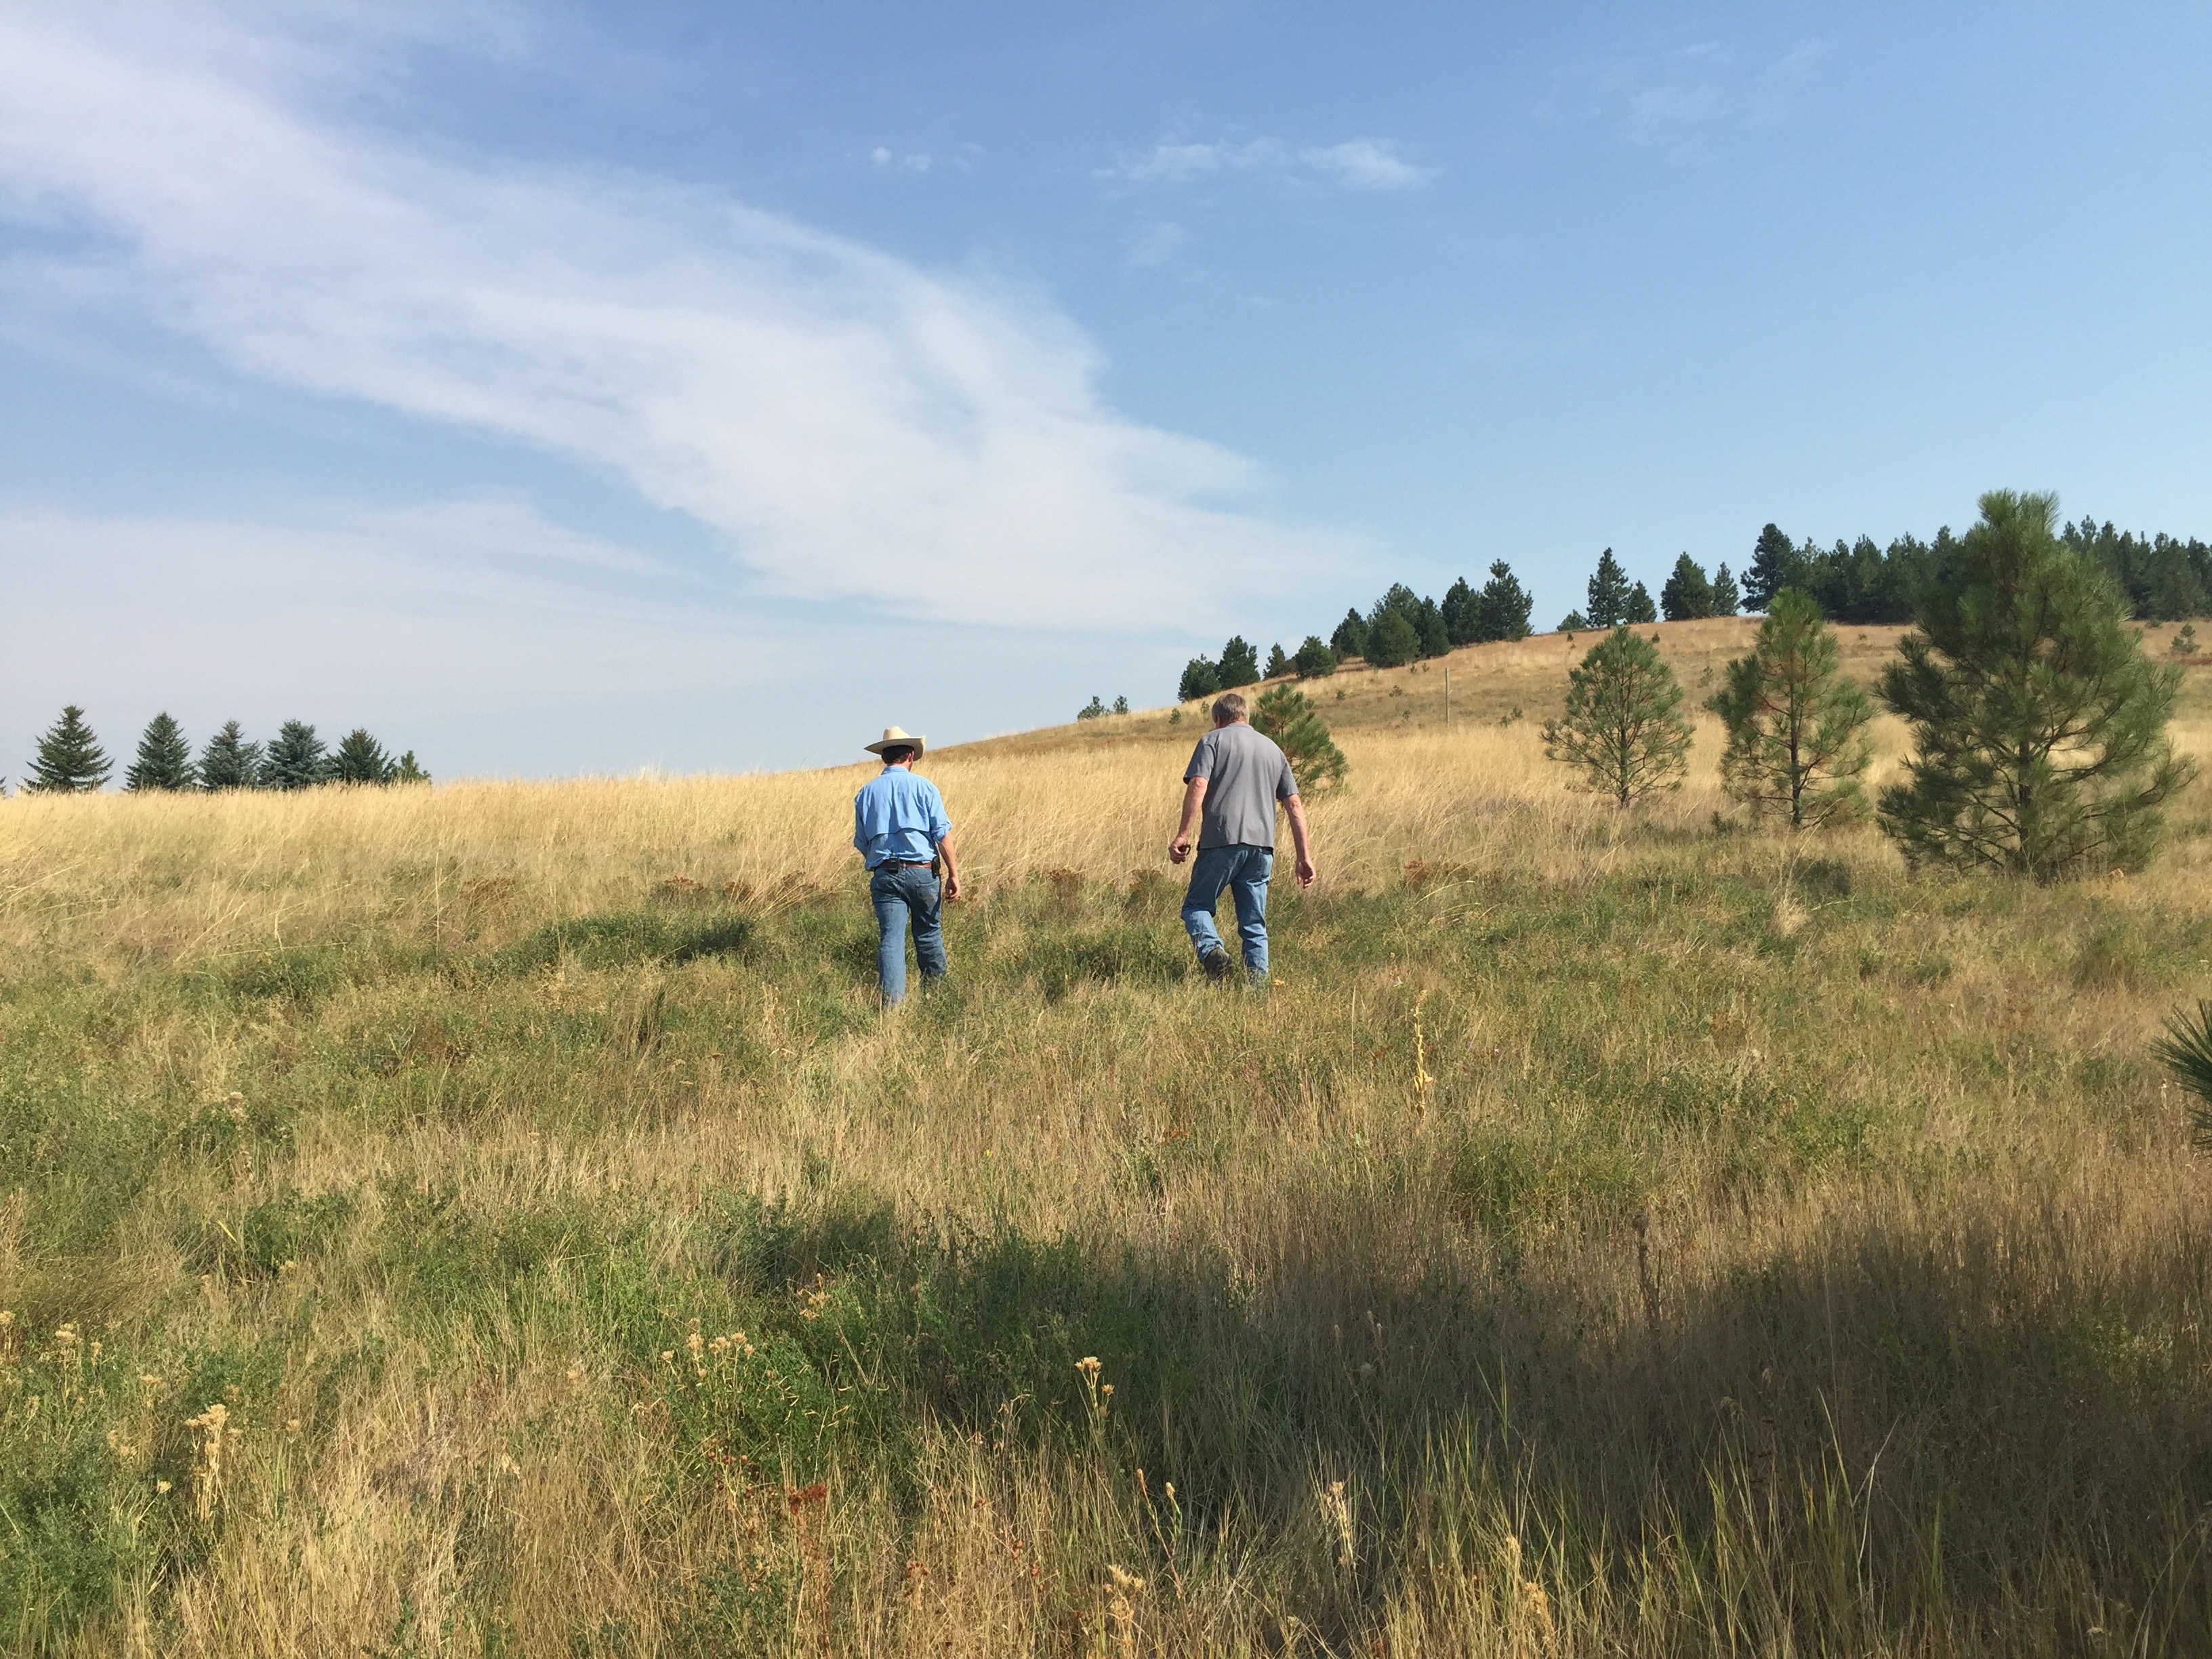 Fish and game helps landowners help wildlife idaho fish for Wildlife fish and game